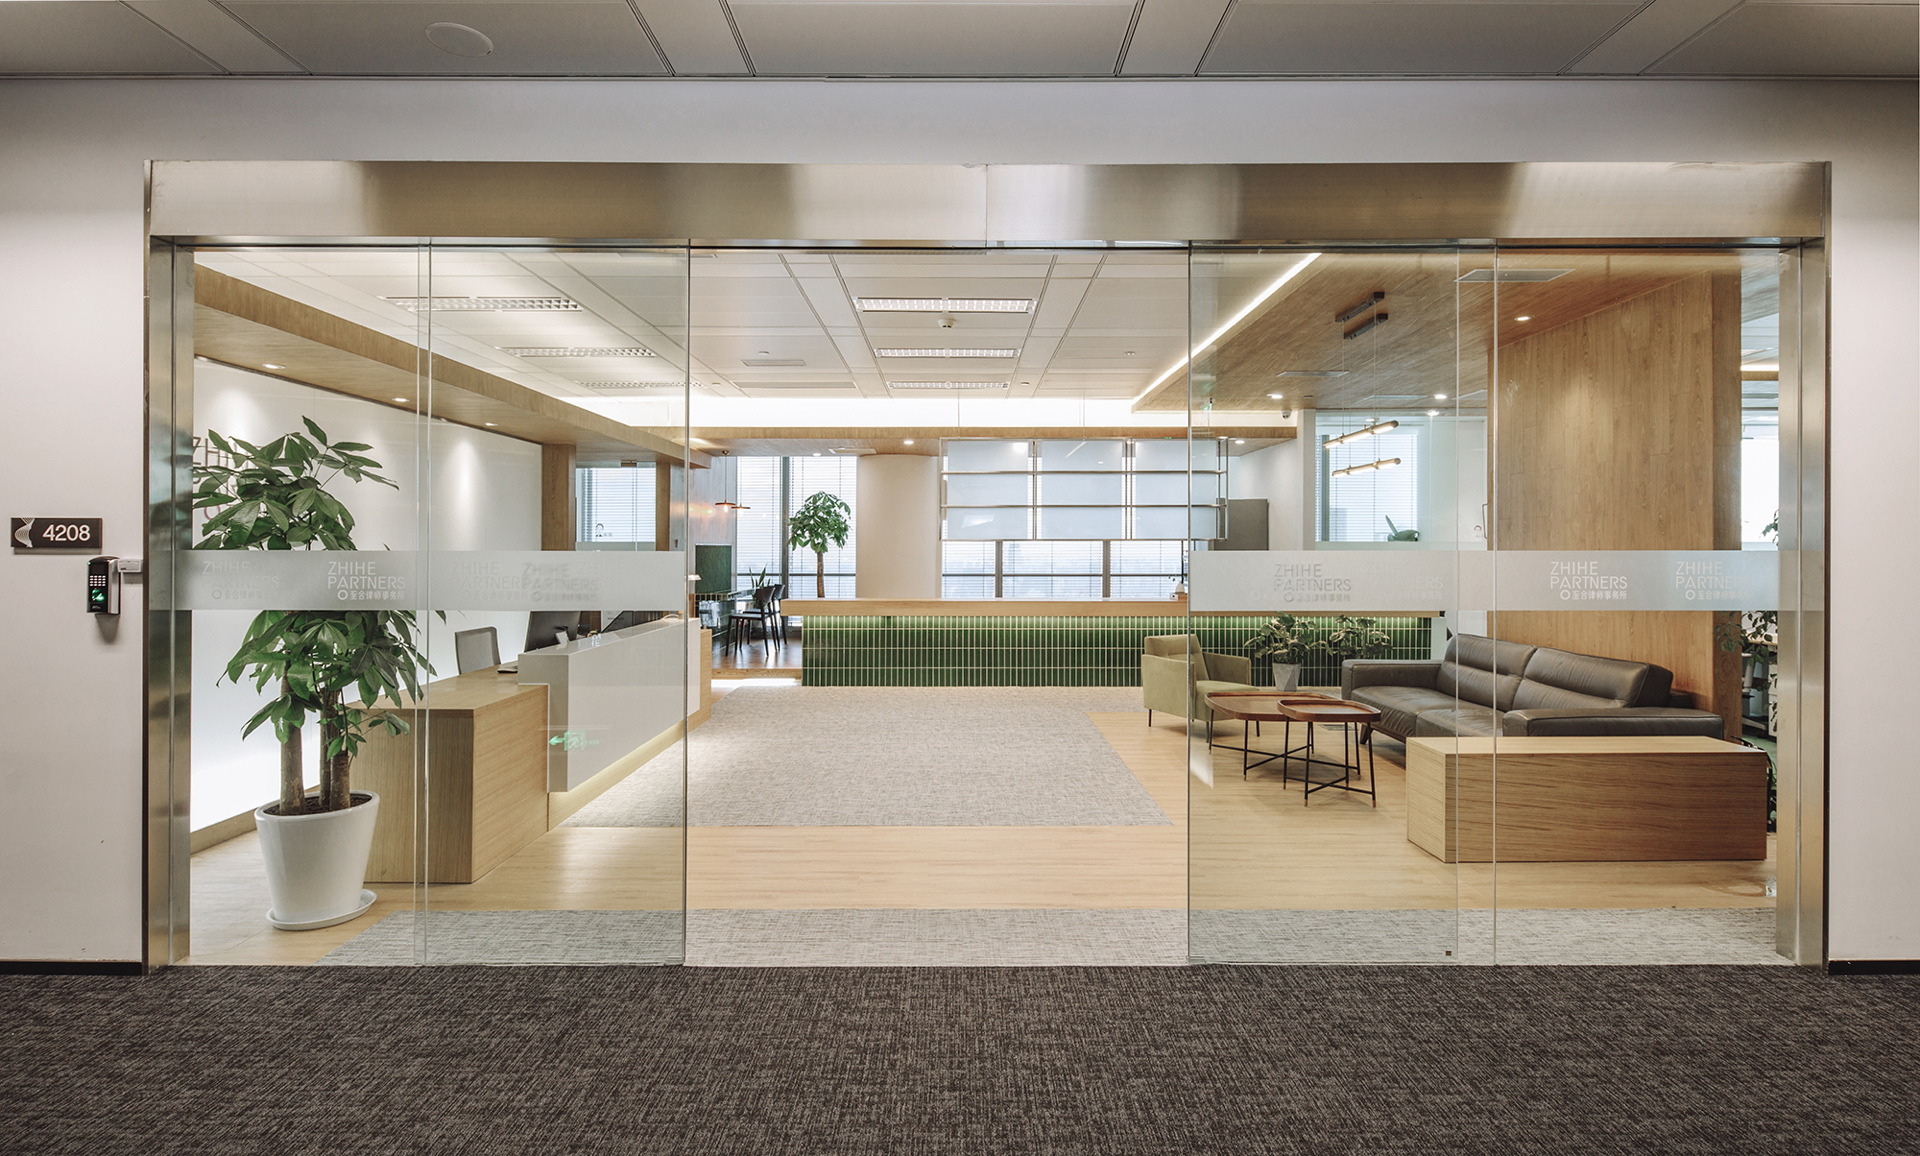 Studio Dotcof For The Zhihe Partners Law Firm Livegreenblog